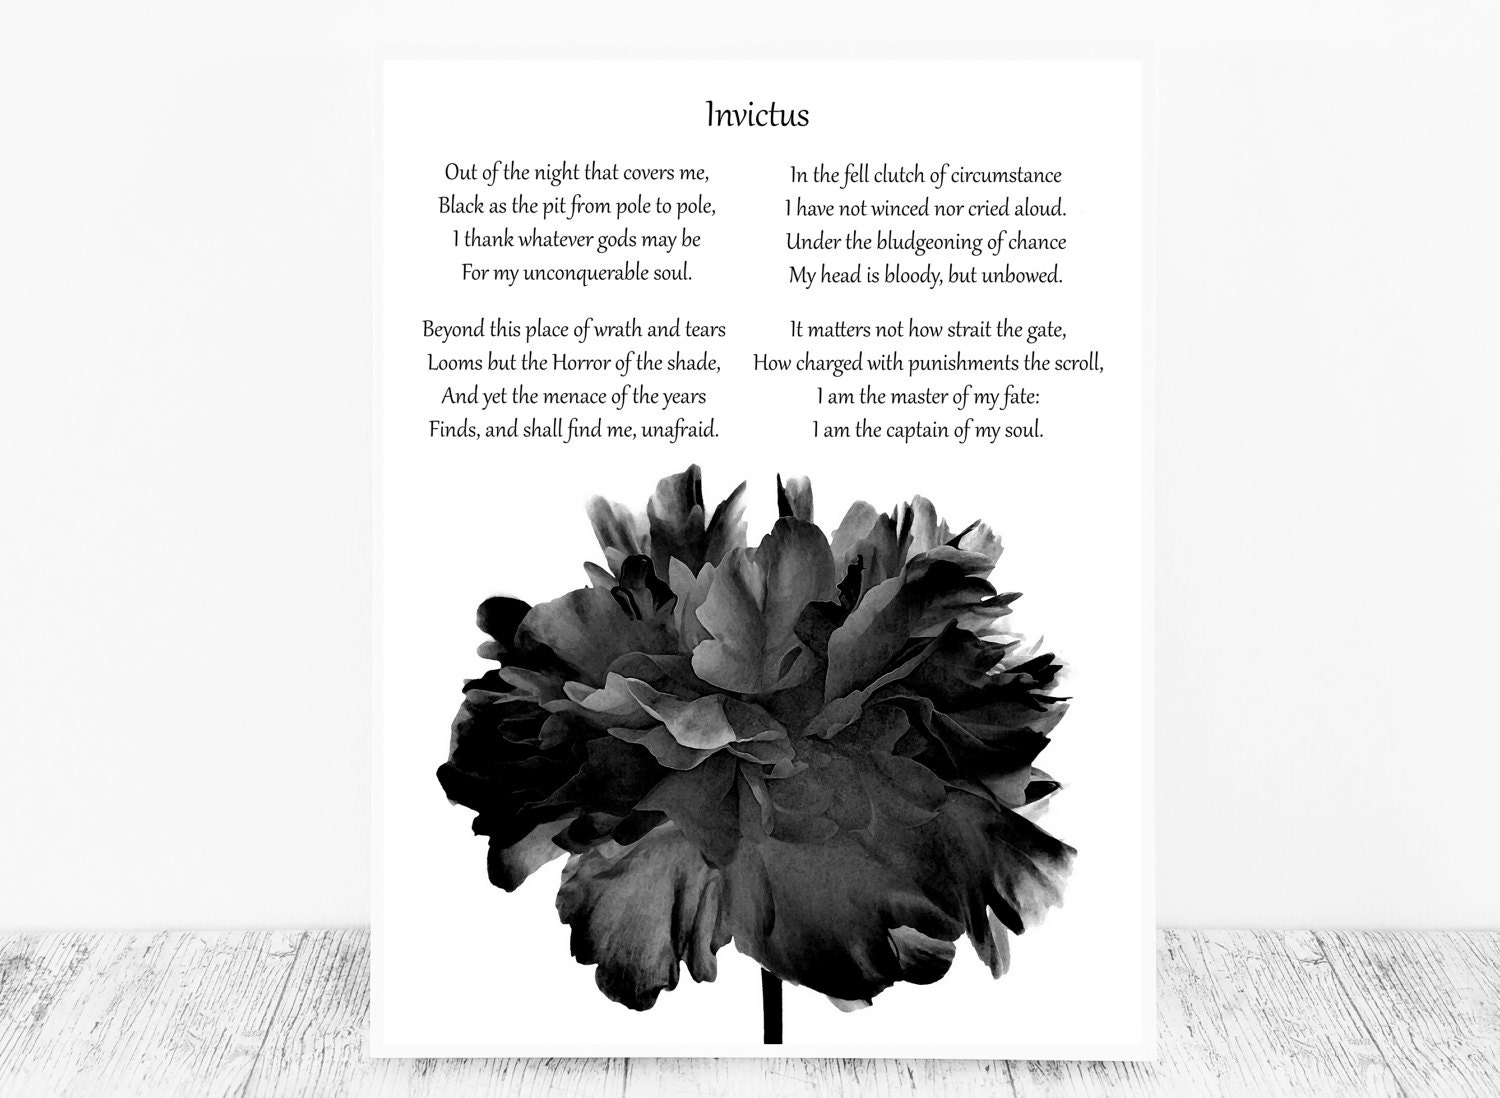 an interpretation of invictus a poem by william ernest henley William ernest henley questions and what is the central idea of the poem invictus by william ernest henley an interpretation of the following lines from.